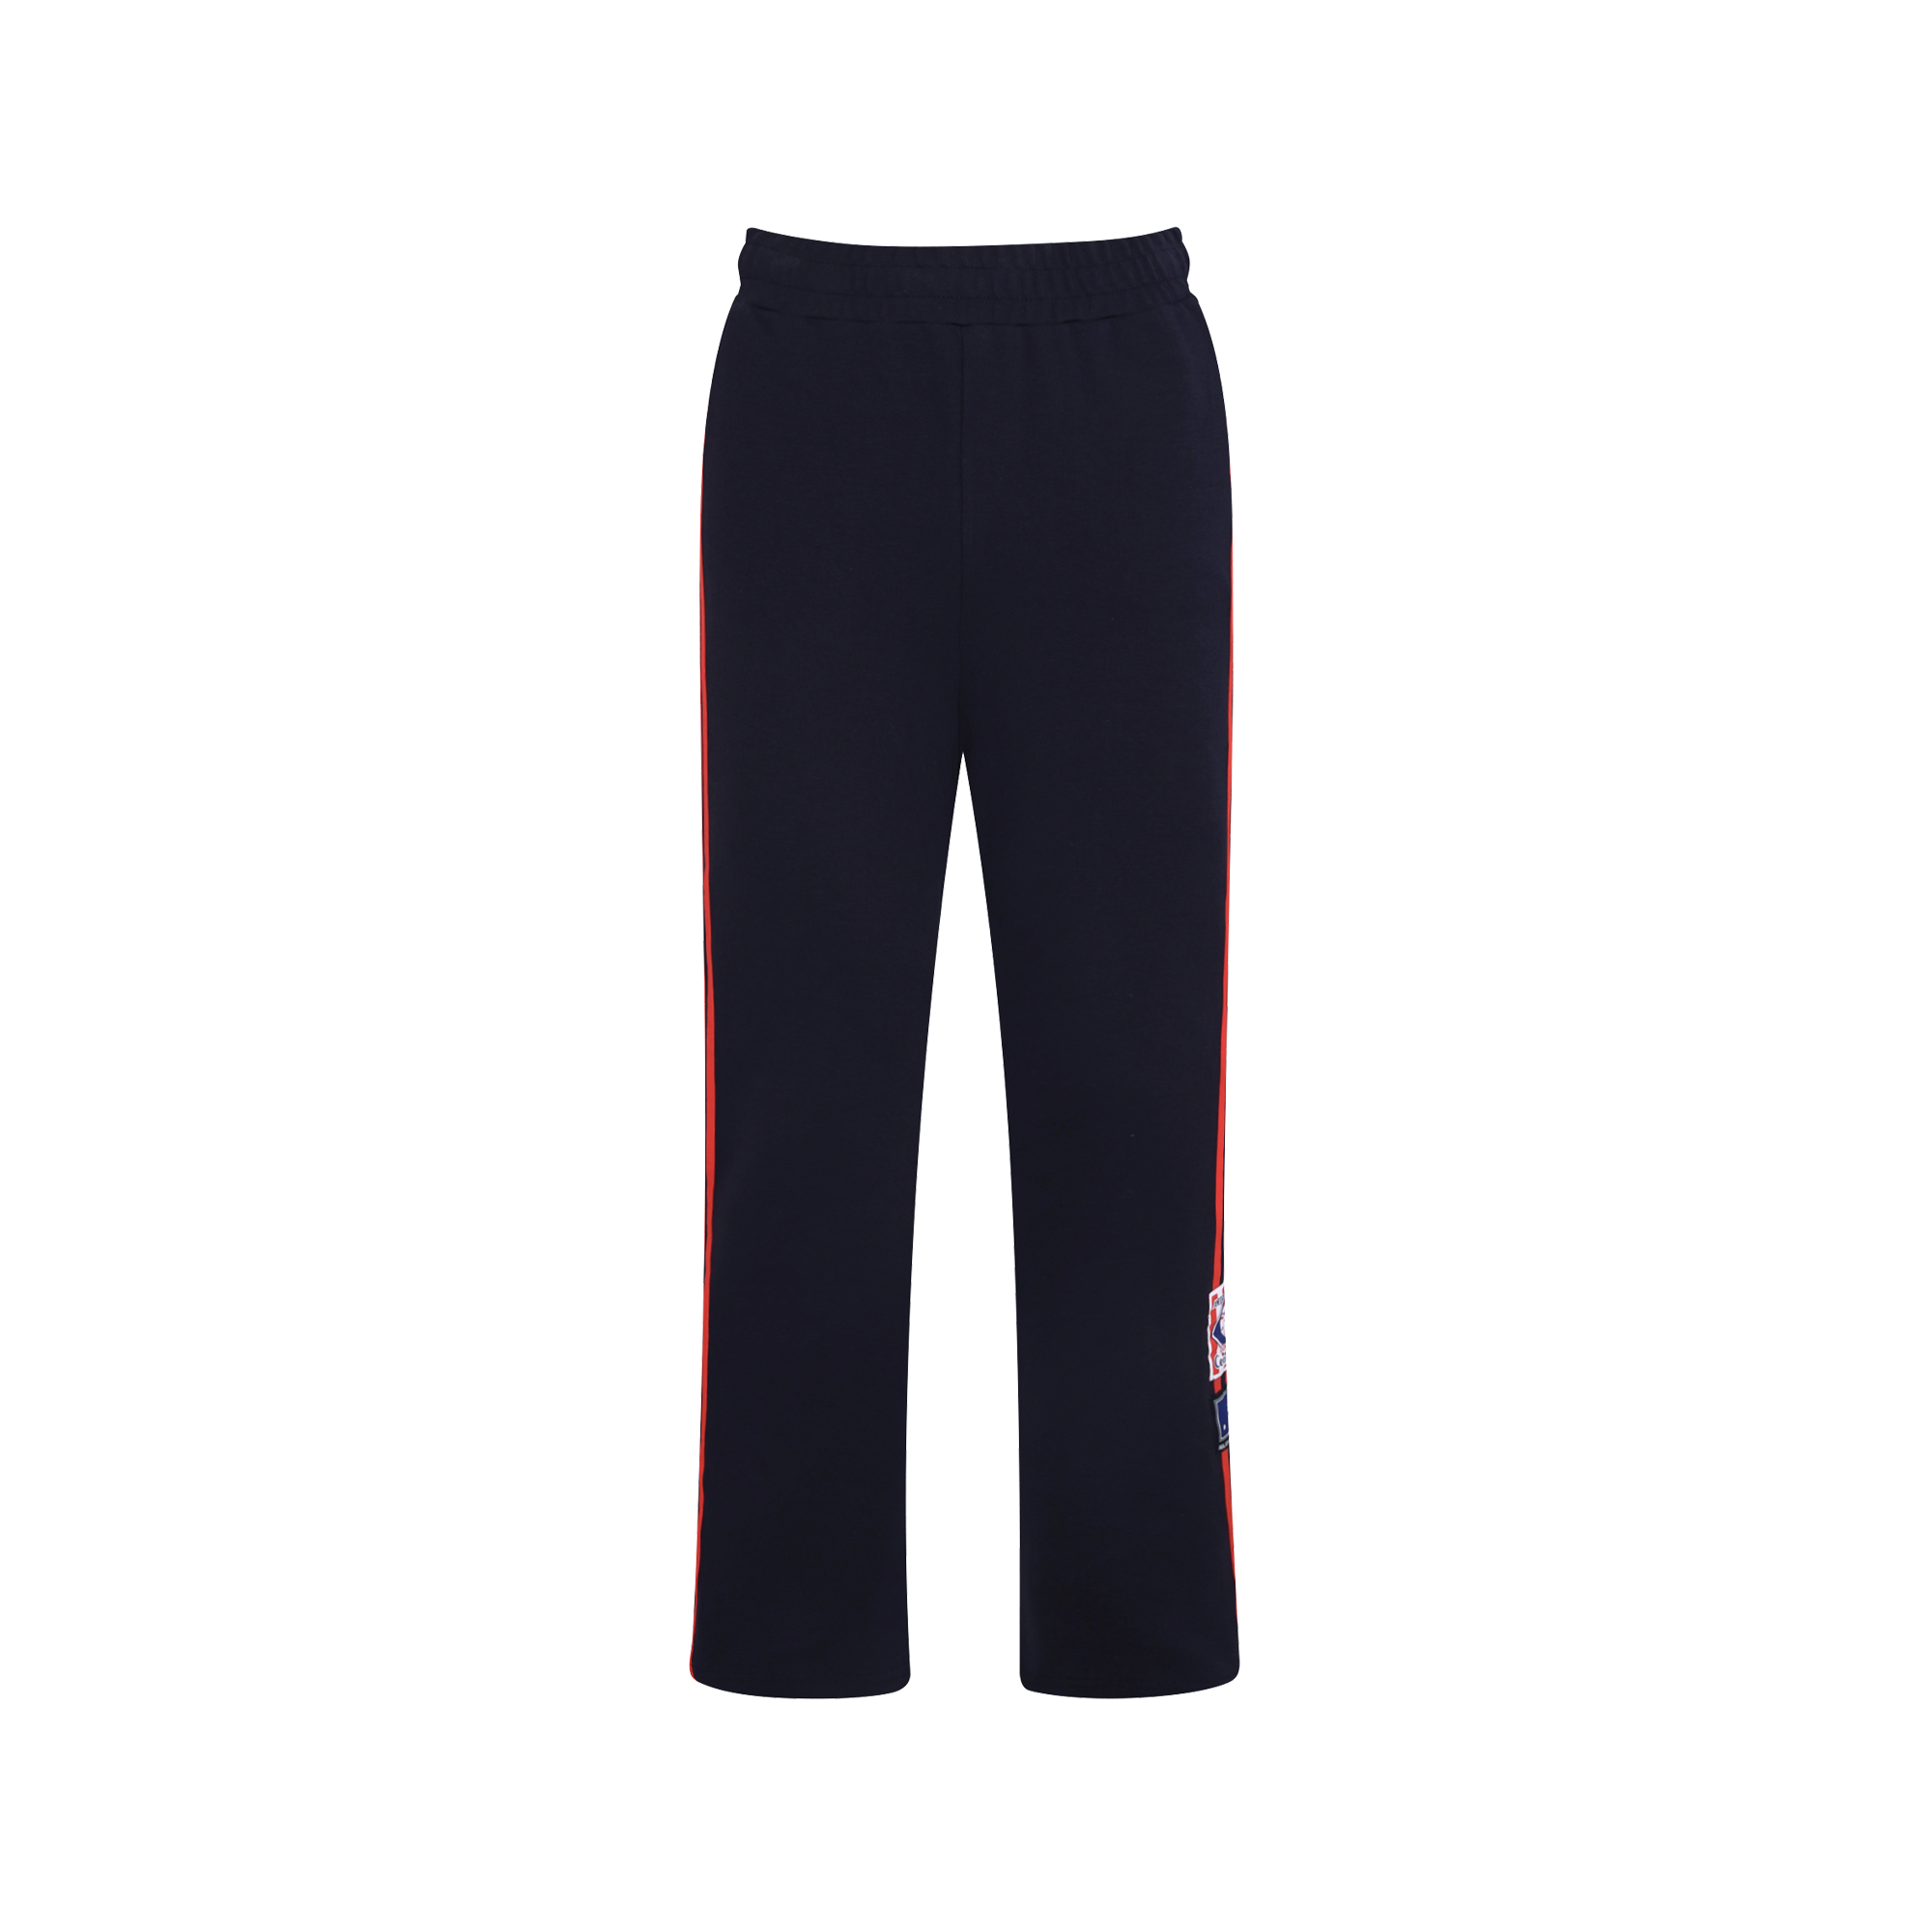 MLB LABEL POINT UNITED PANTS